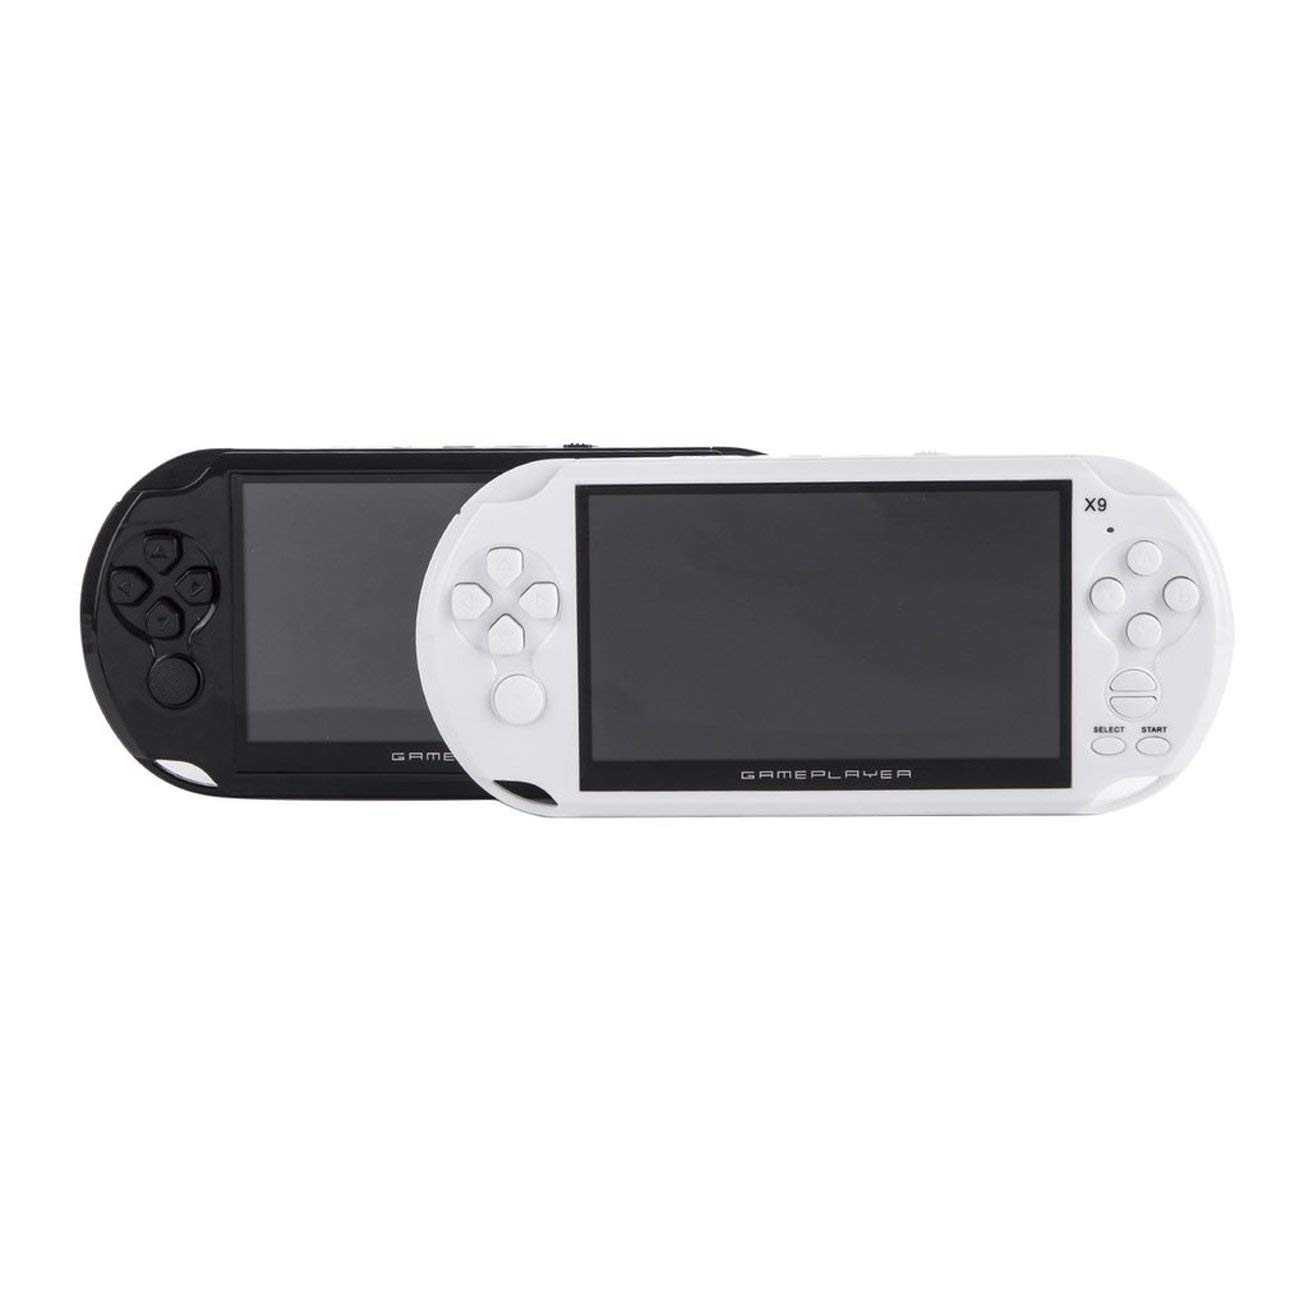 Smartlove1P Portable Size 5.0 Inch Large Screen 8GB Game Console Handheld Game Player MP3 Player Gamepad with Classic Games by Smartlove1P (Image #10)